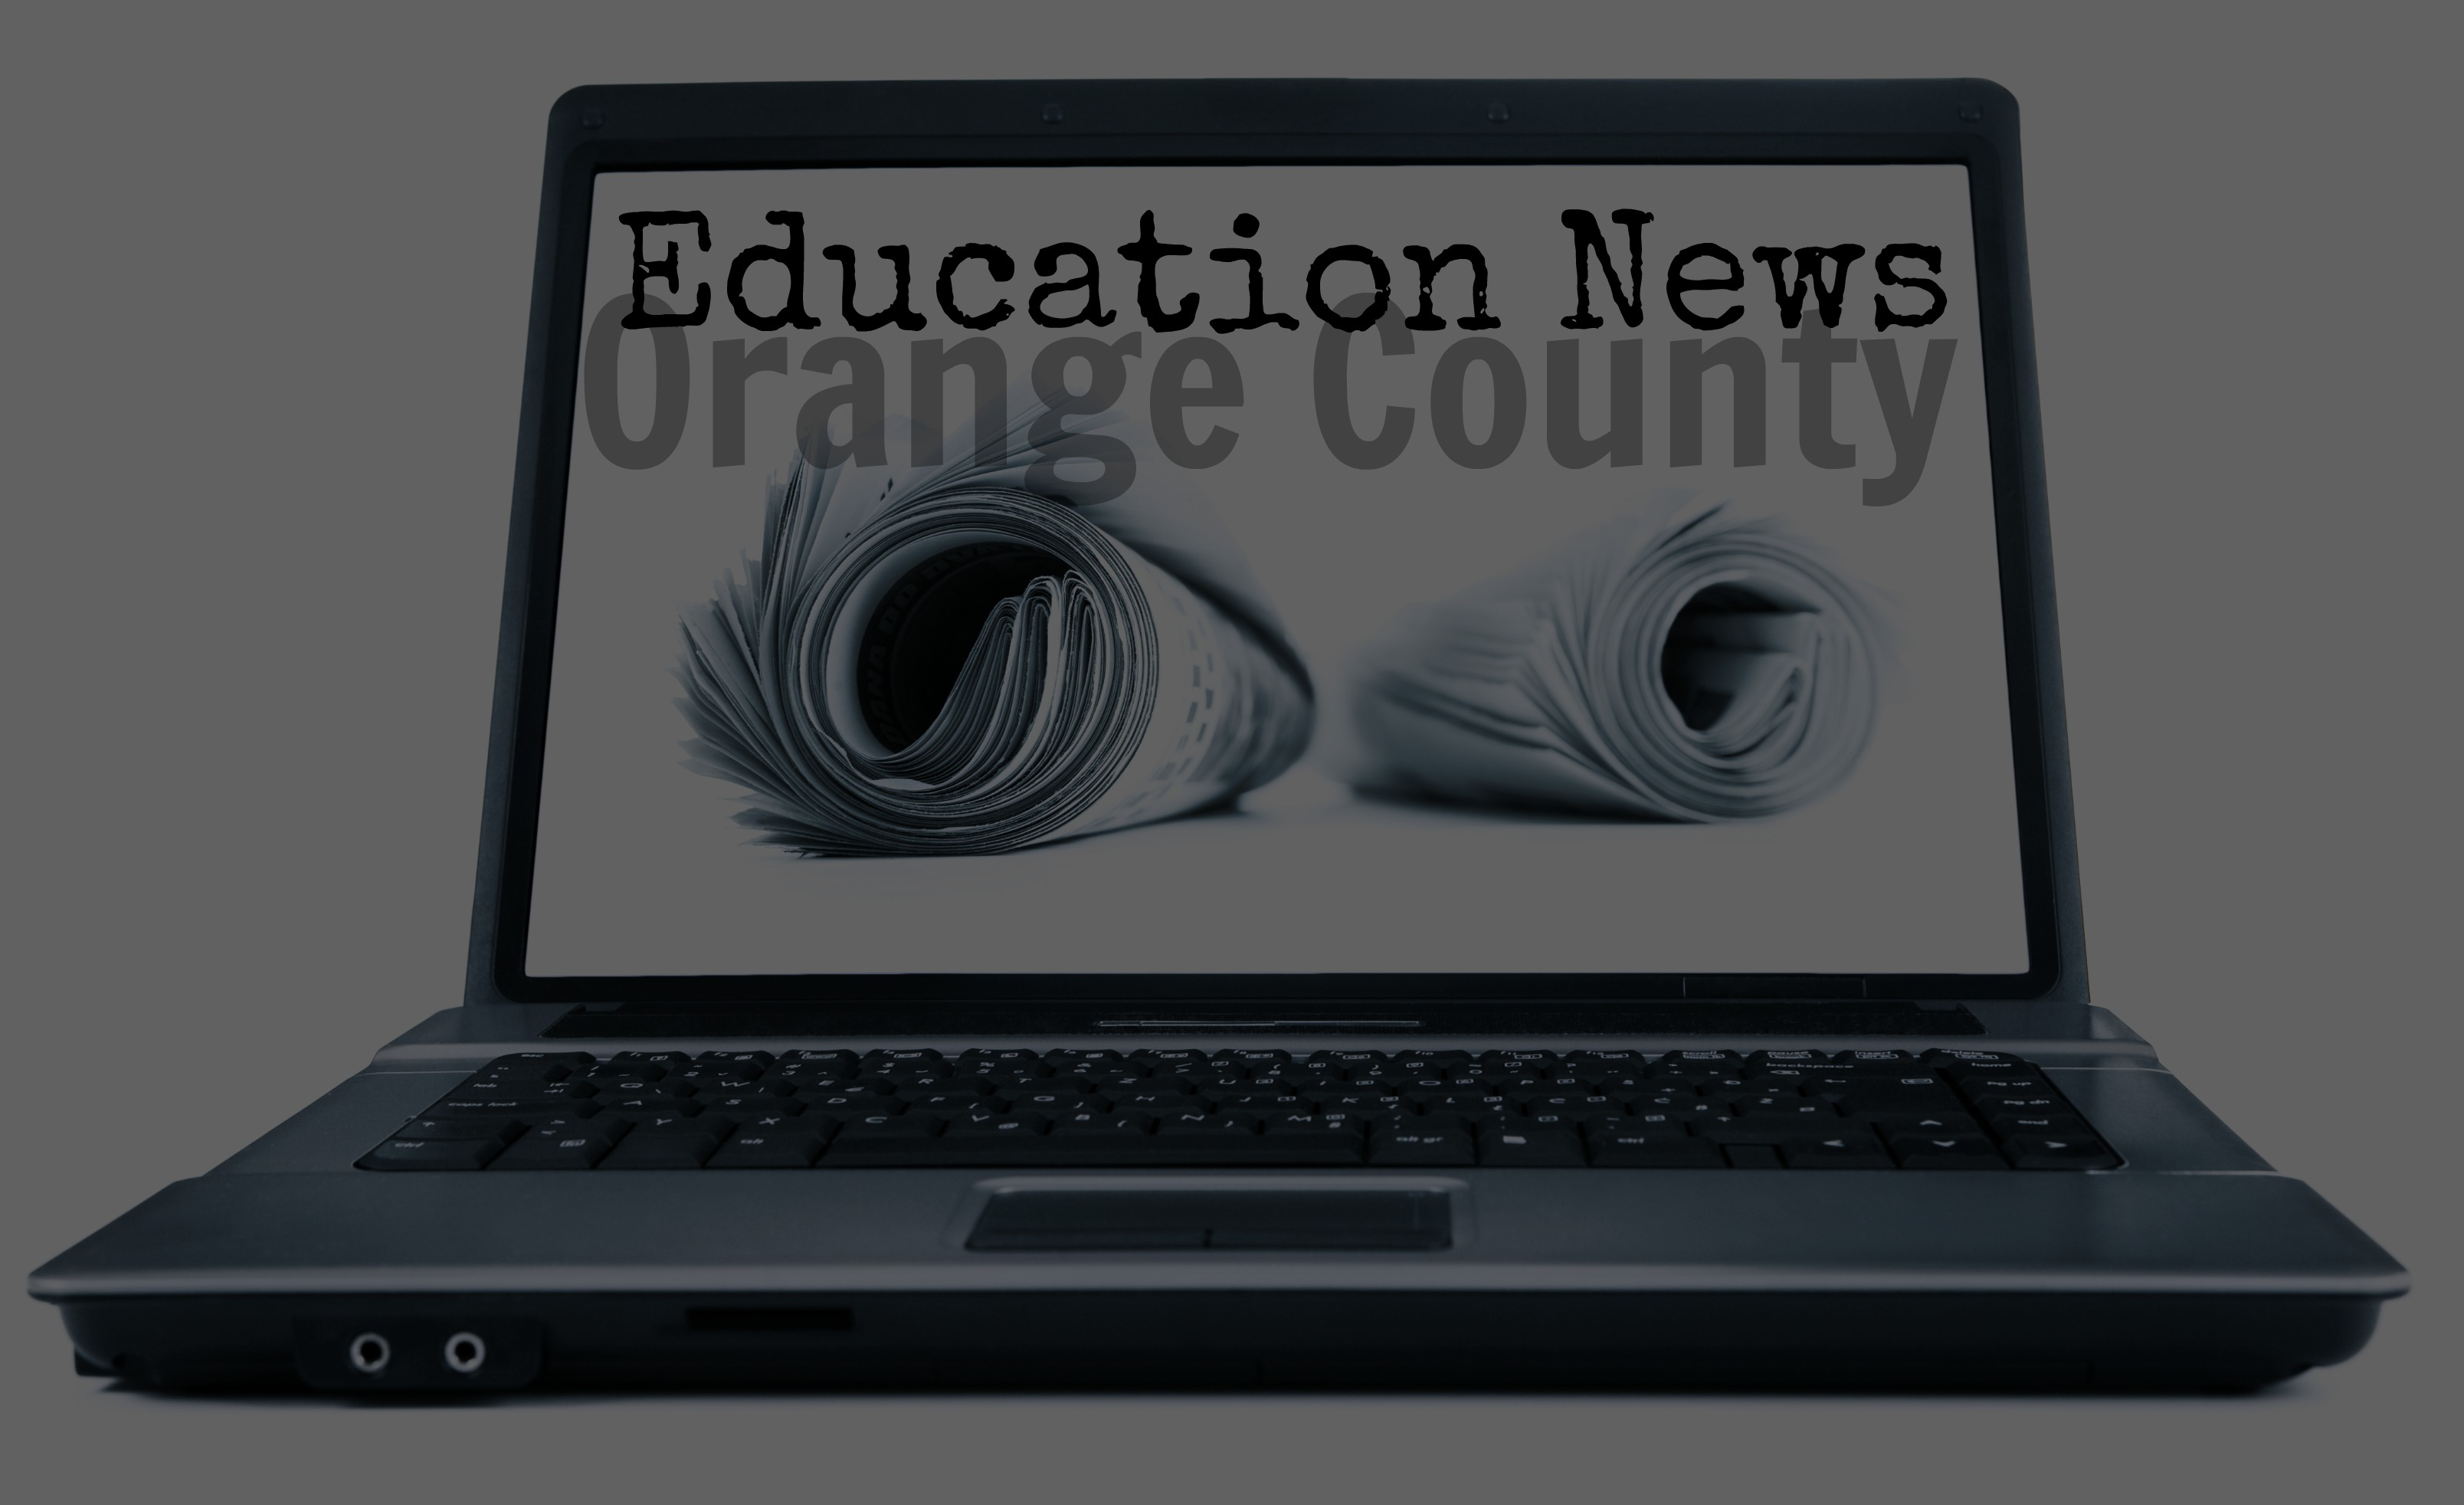 Weekly roundup: Students test storm water quality, governor wants more money for schools, and more